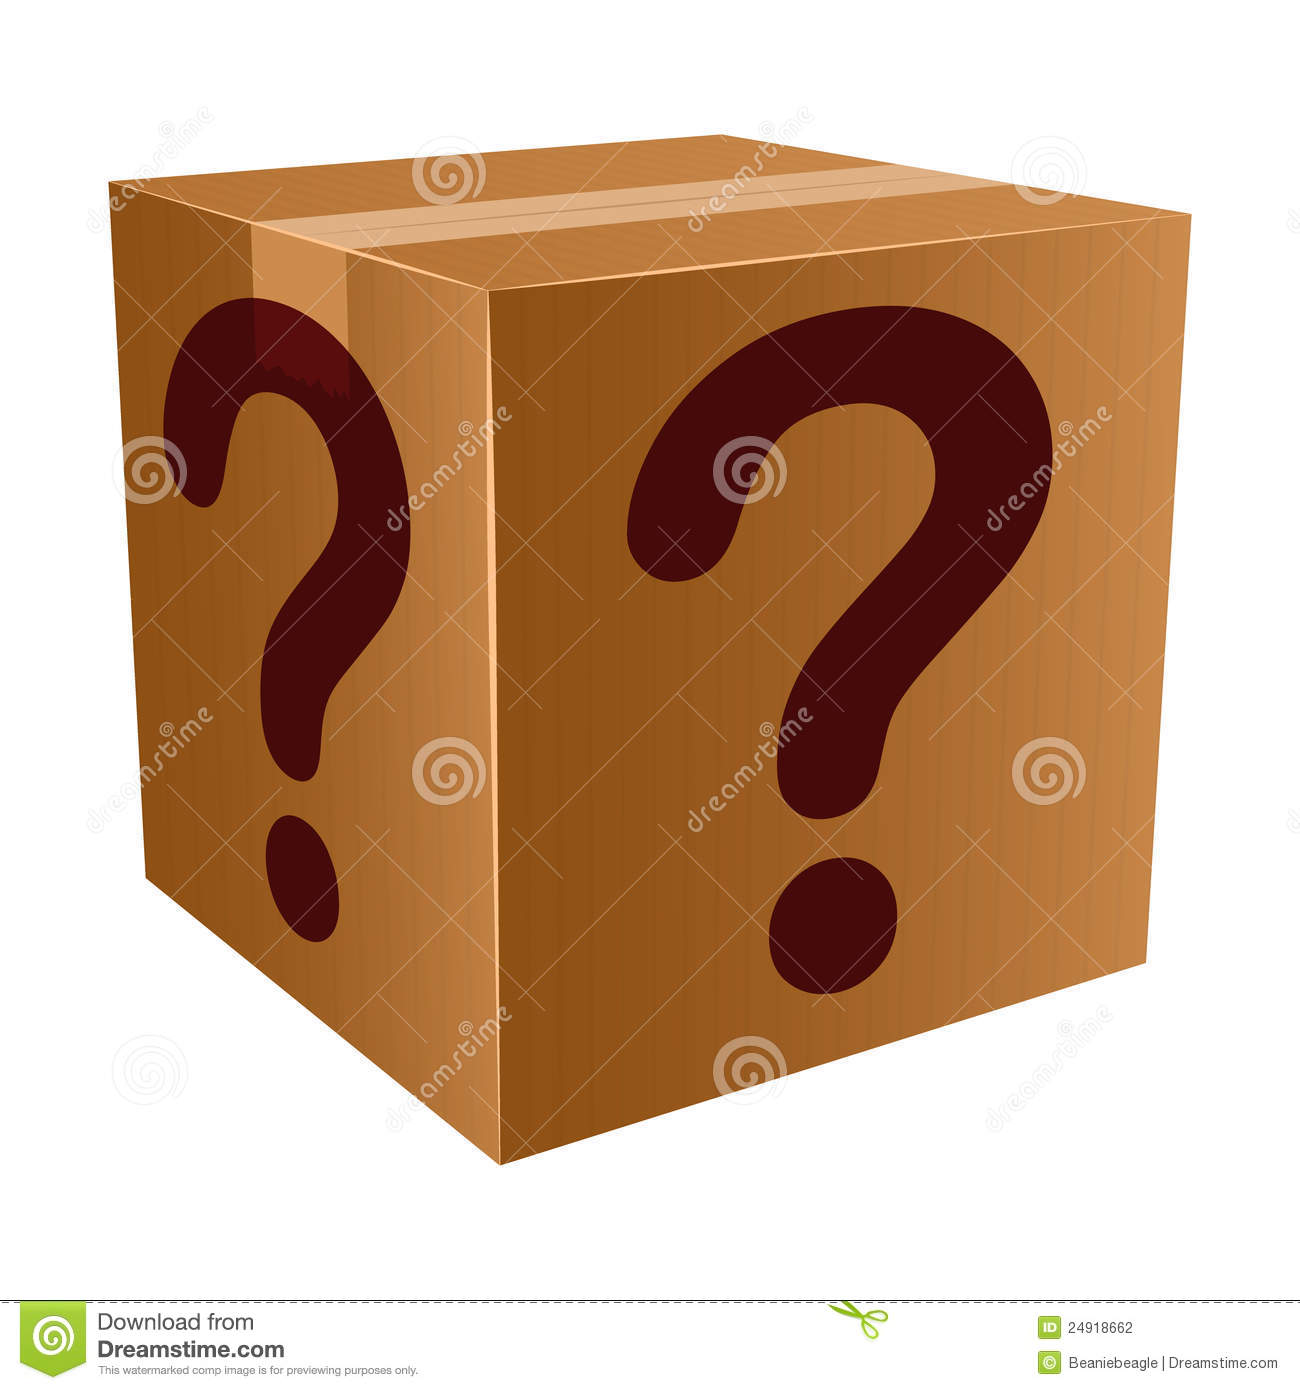 An illustration of a mystery box with questions marks.